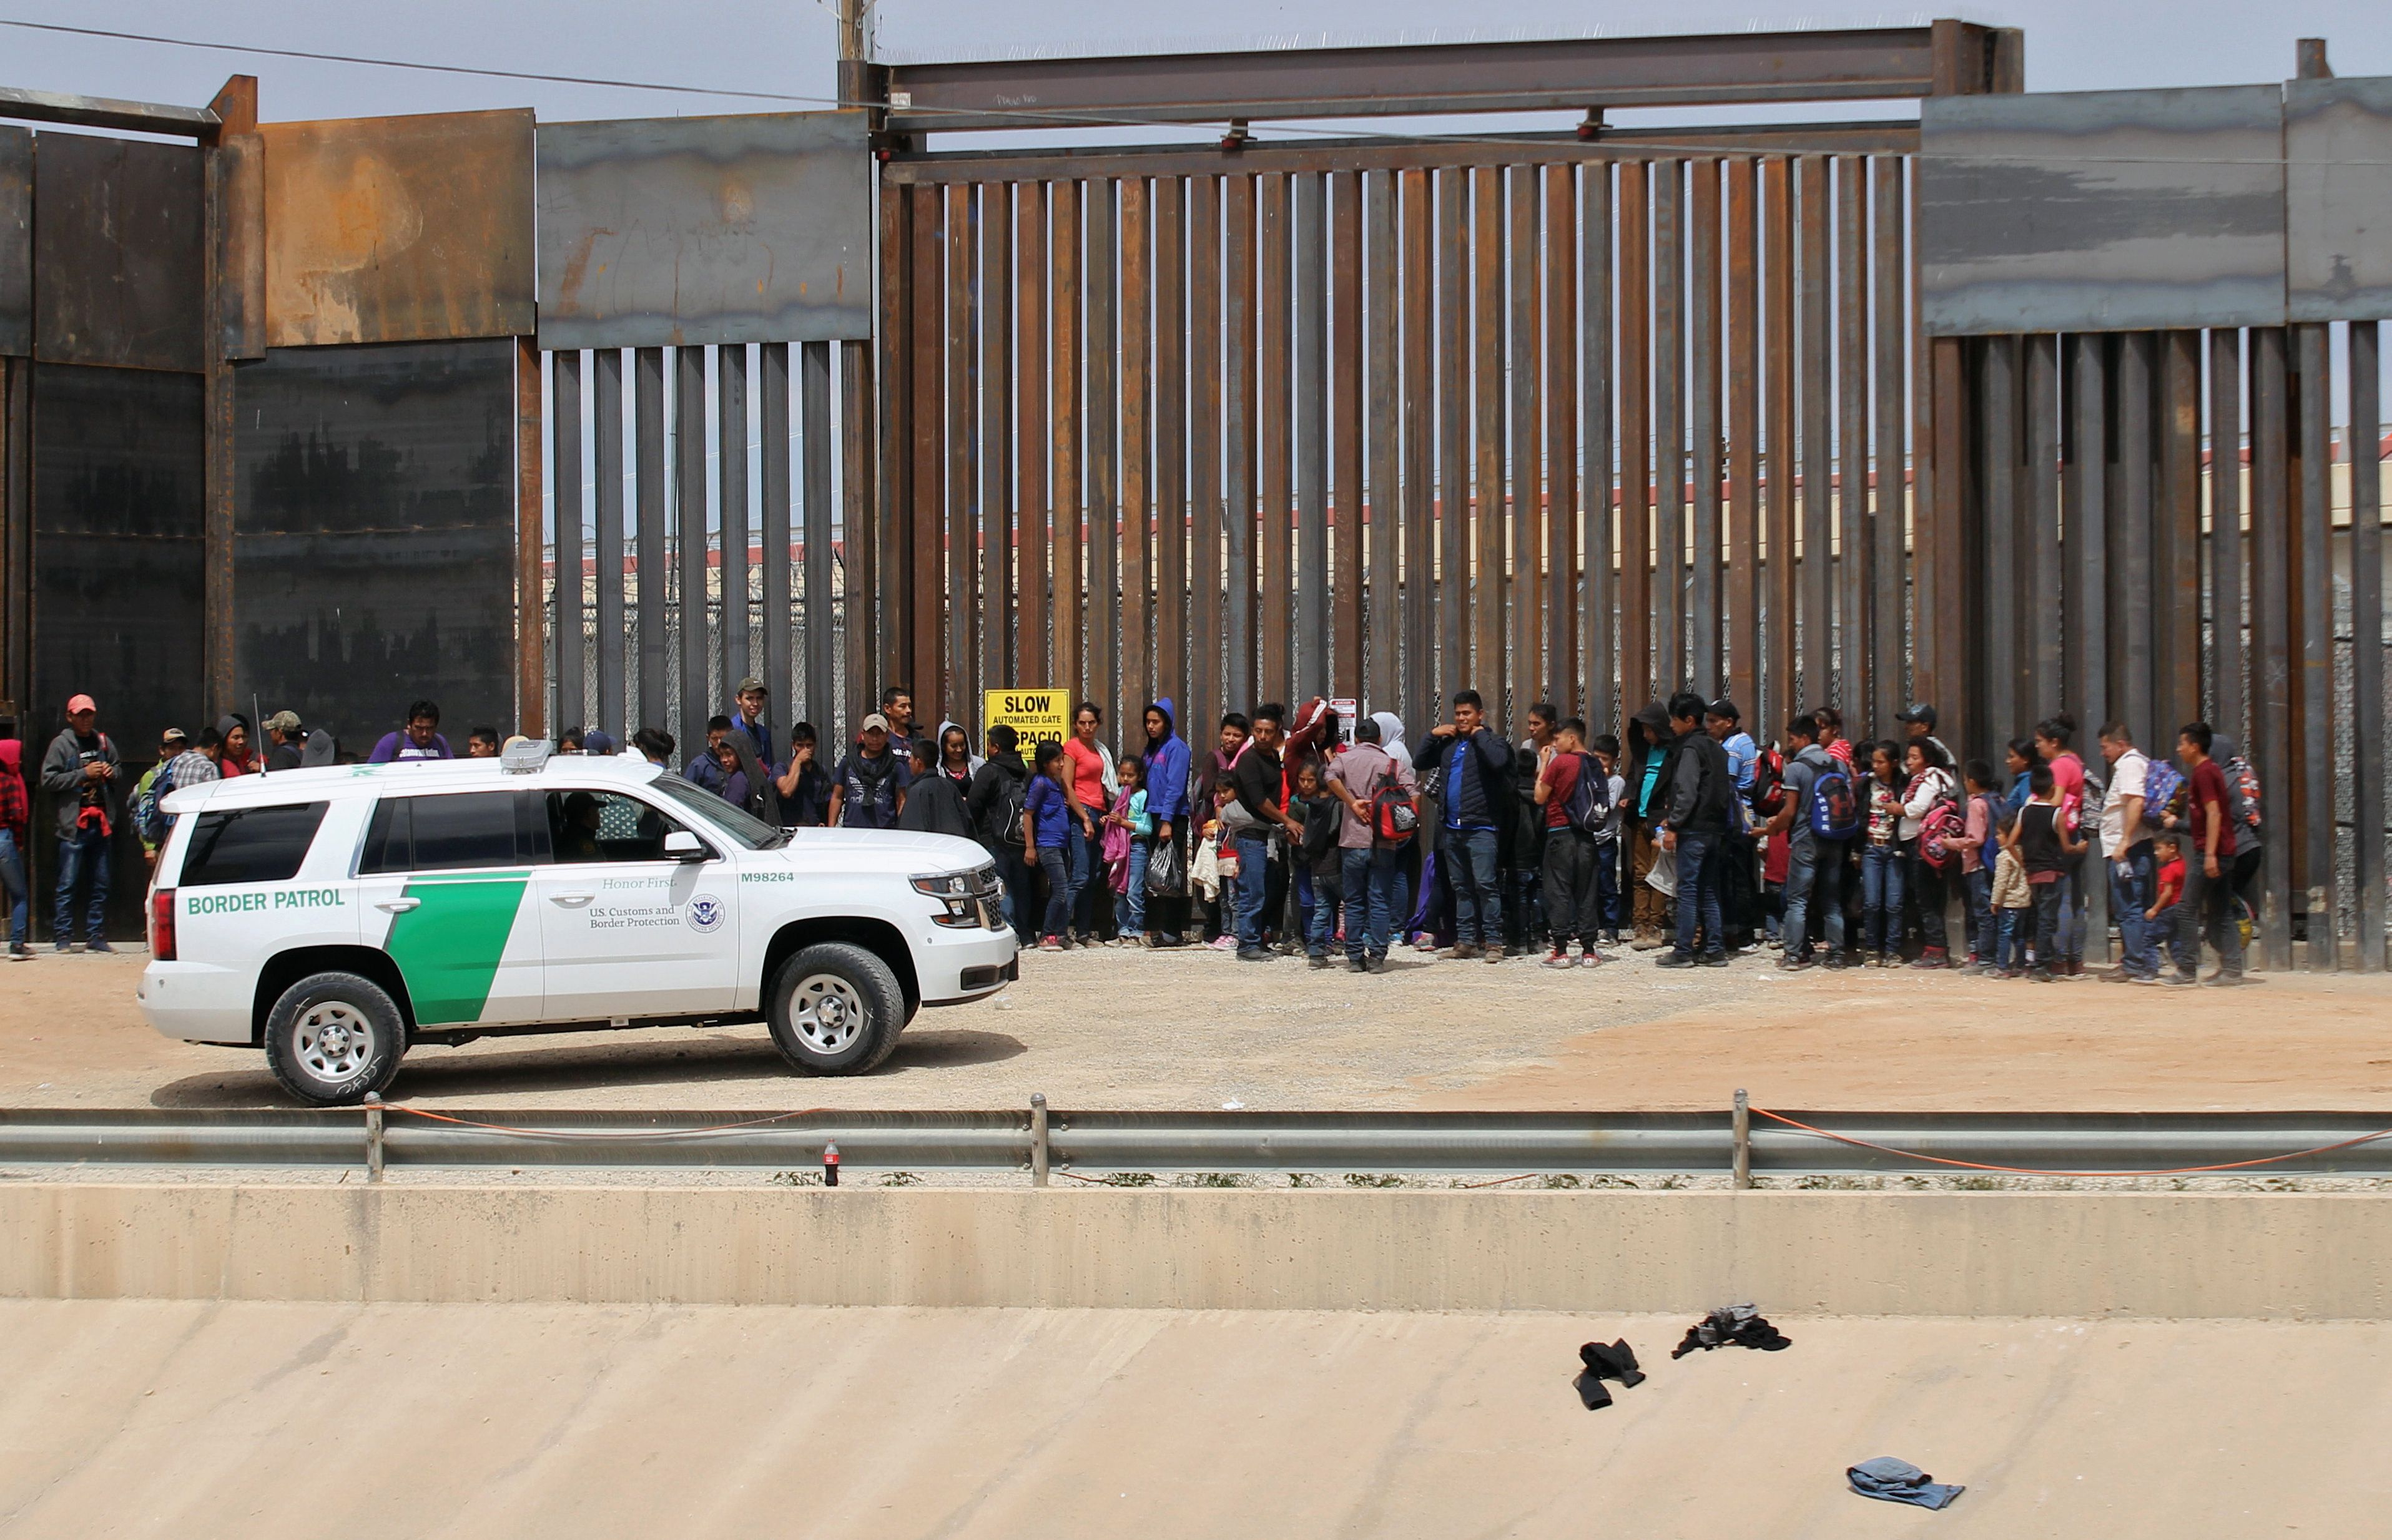 TOPSHOT - Central American migrants are detained by US Customs and Border Patrol agents at the border wall in Ciudad Juarez, Chihuahua state, Mexico, on May 7, 2019. (Photo by HERIKA MARTINEZ/AFP/Getty Images)